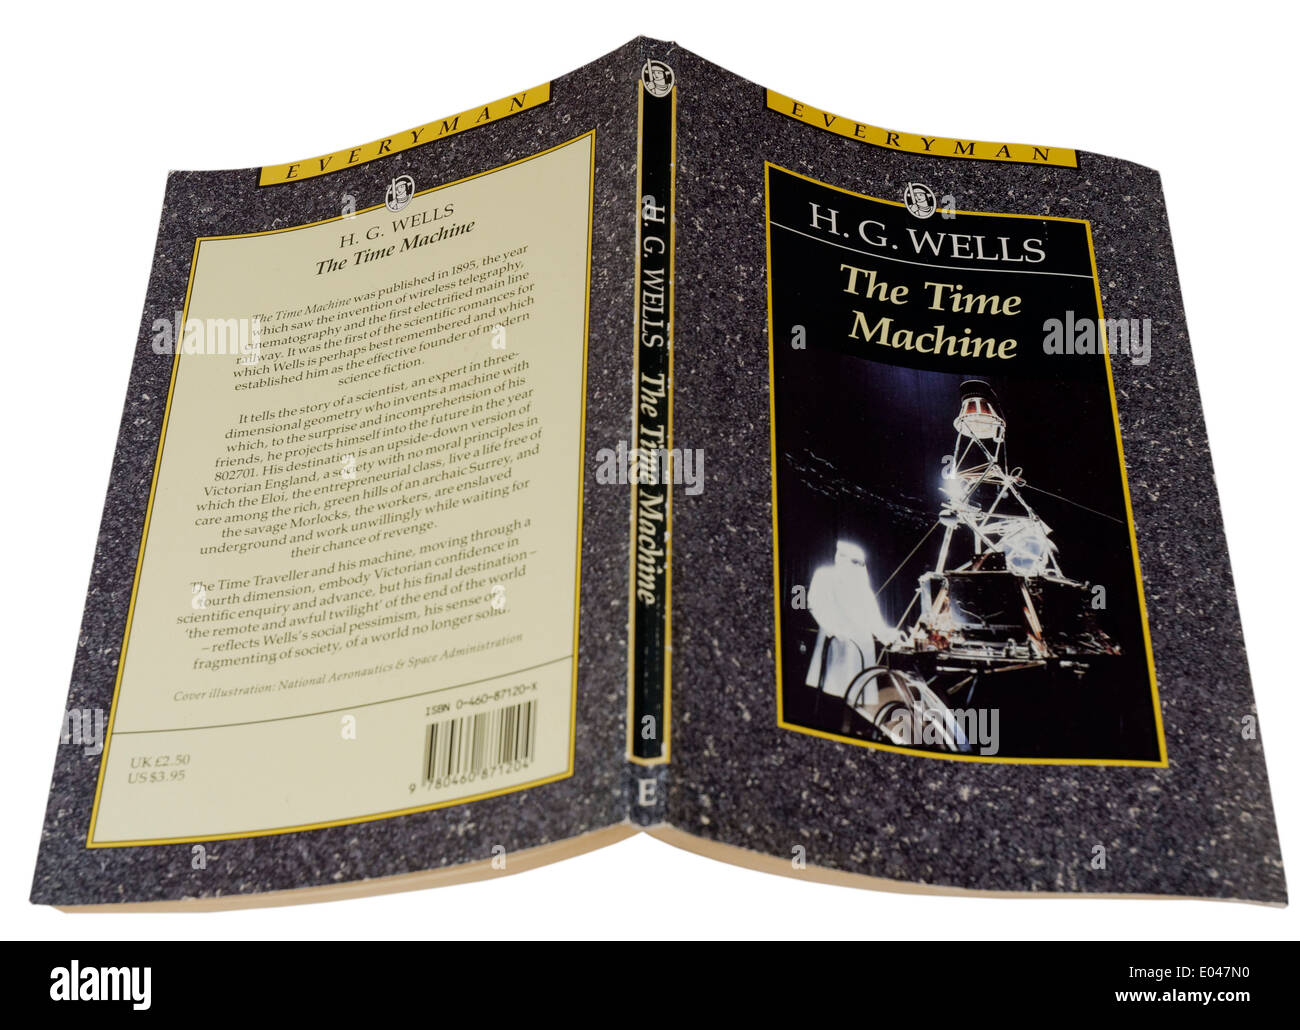 The Time Machine by HG Wells - Stock Image